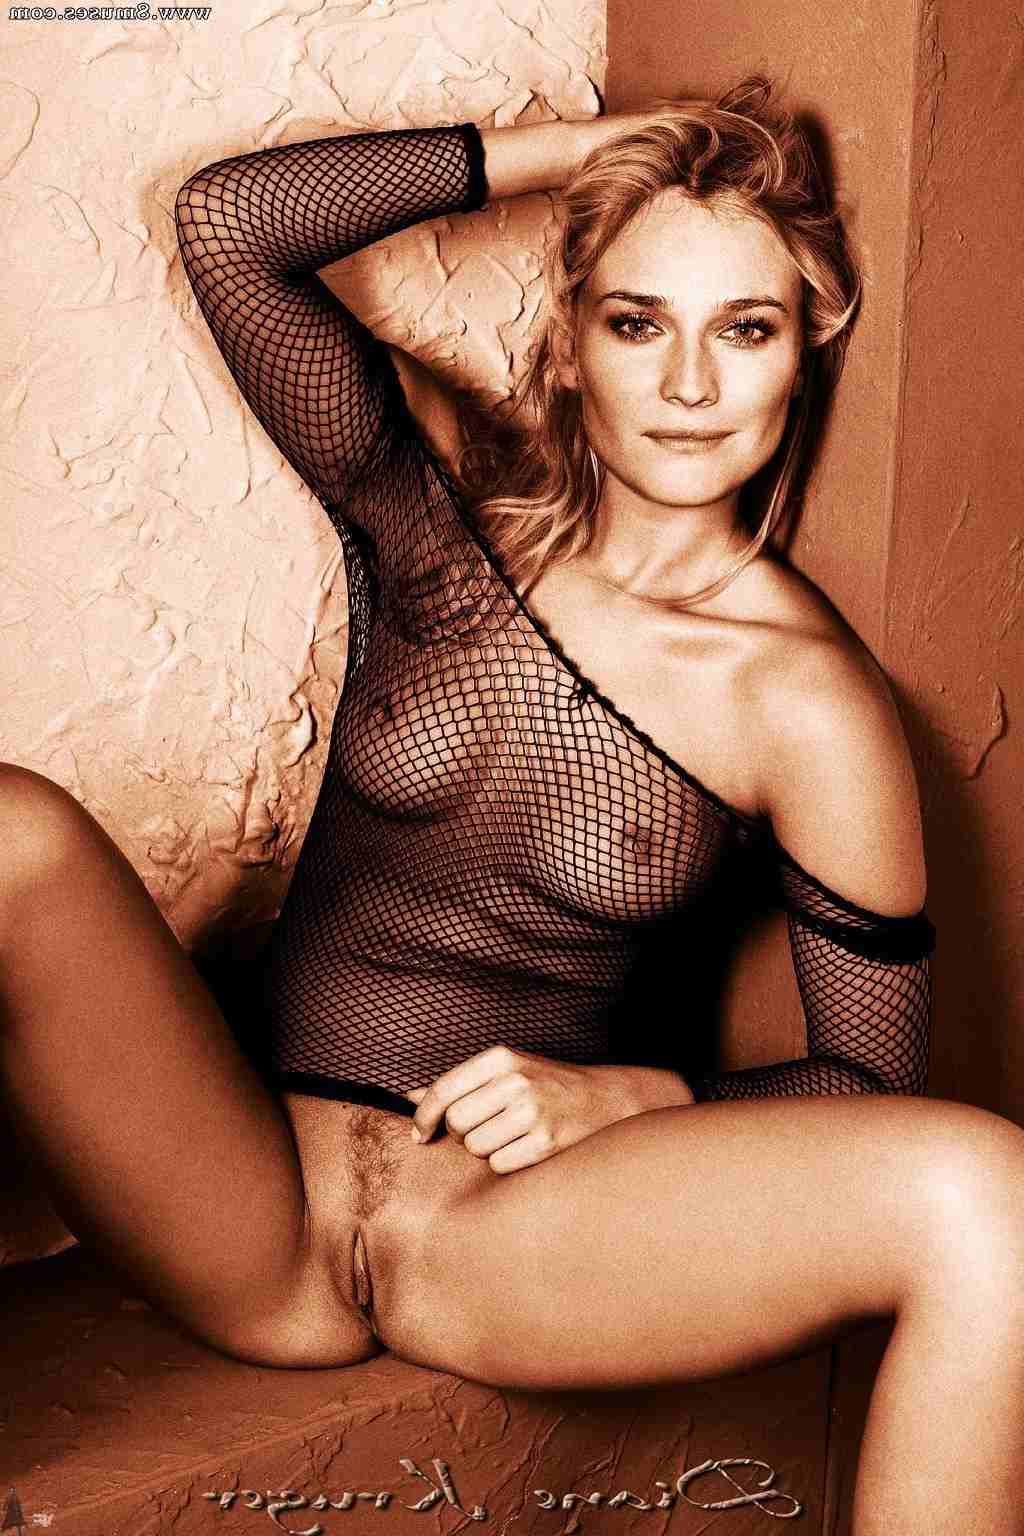 Fake-Celebrities-Sex-Pictures/Diane-Kruger Diane_Kruger__8muses_-_Sex_and_Porn_Comics.jpg